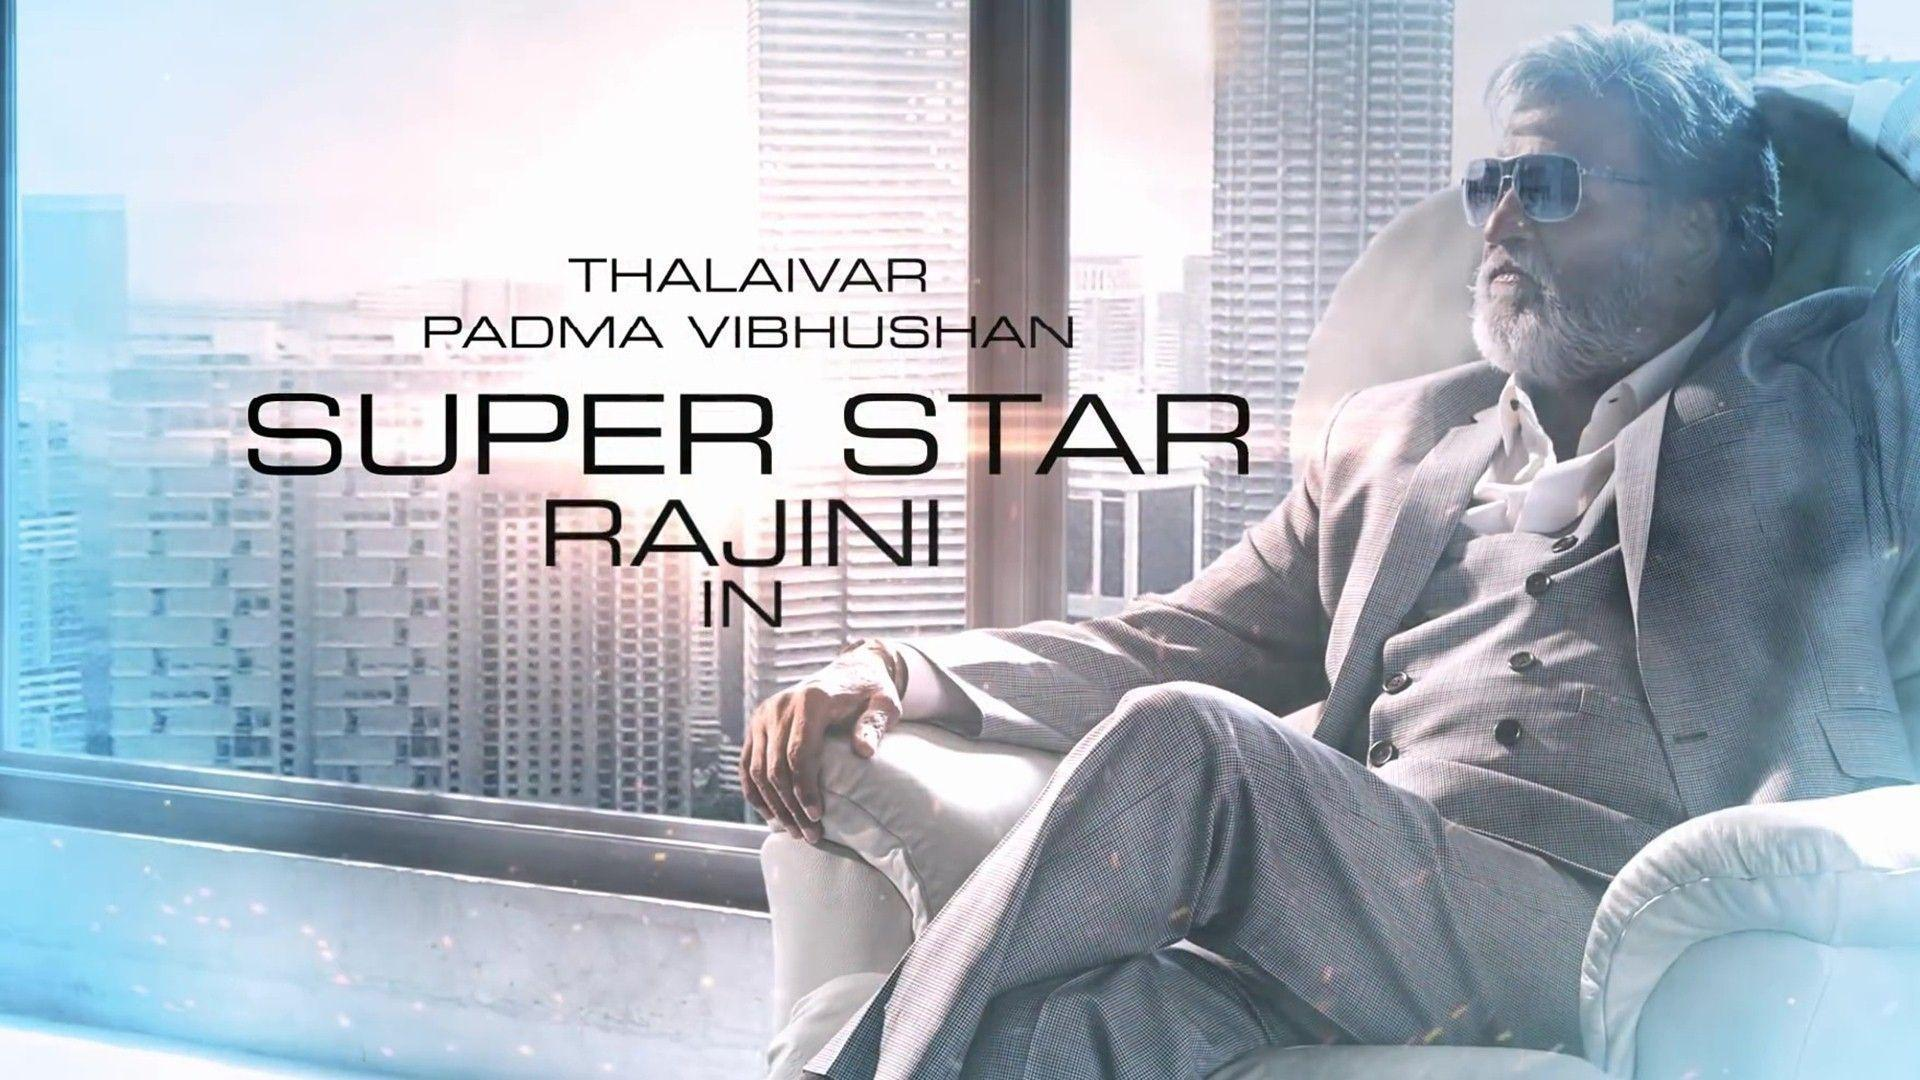 Rajinikanth In Kabali Wallpaper 00947 - Baltana